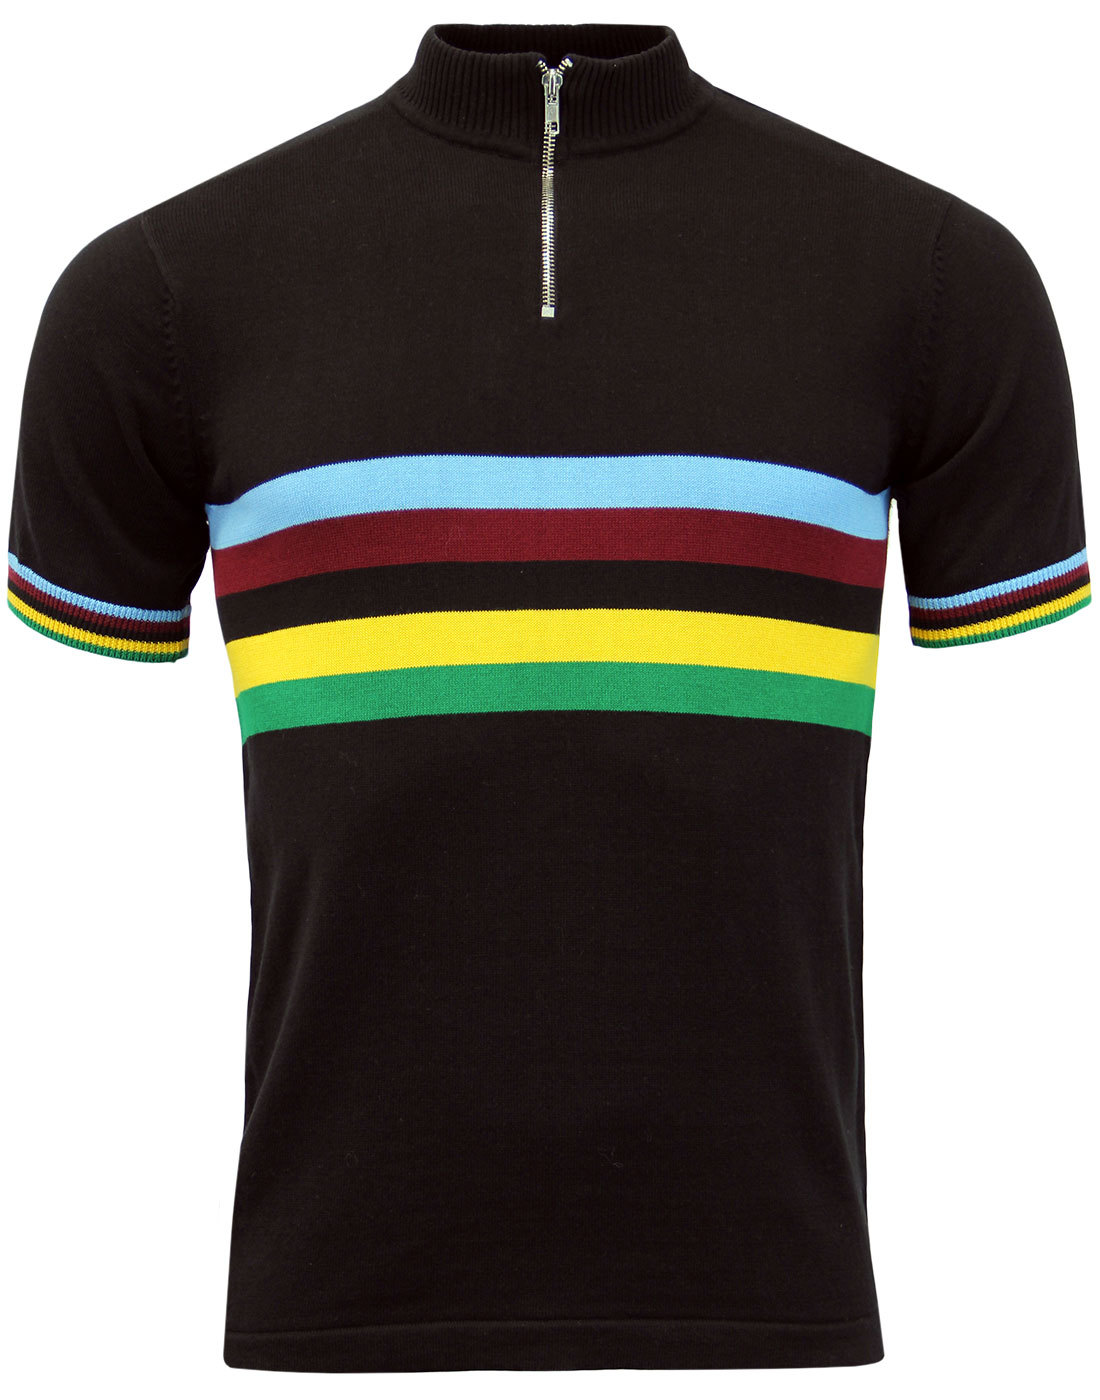 Velo MADCAP ENGLAND Rainbow Stripe Cycling Top (B)